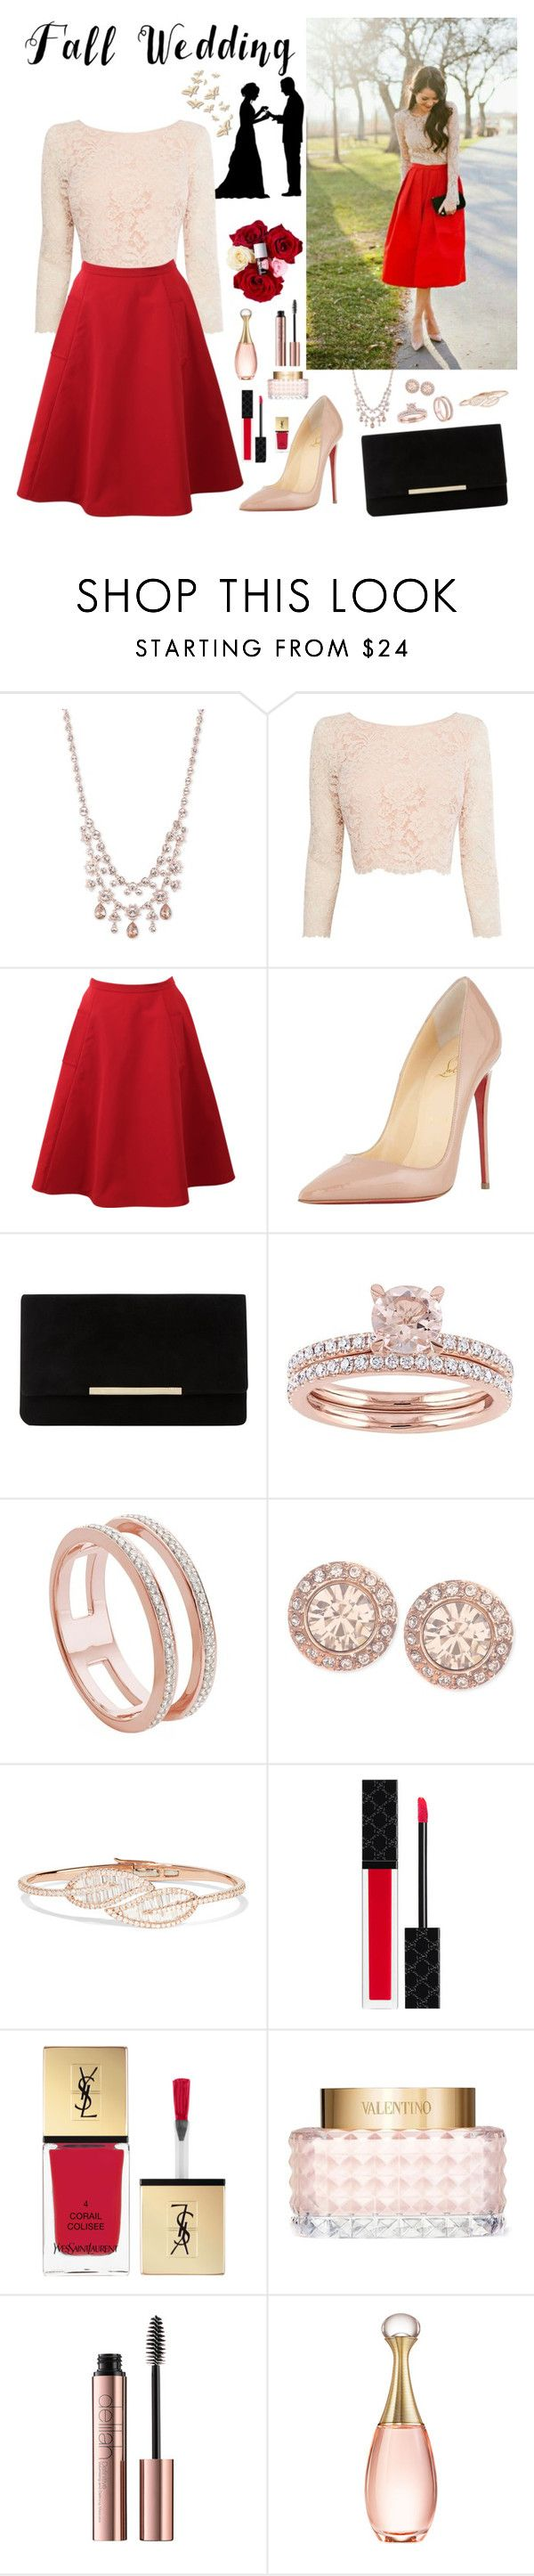 """""""Fall Wedding Guest Outfit"""" by whims-and-craze ❤ liked on Polyvore featuring Givenchy, Coast, Lanvin, Christian Louboutin, Dune, Monica Vinader, Anita Ko, Gucci, Yves Saint Laurent and Valentino"""